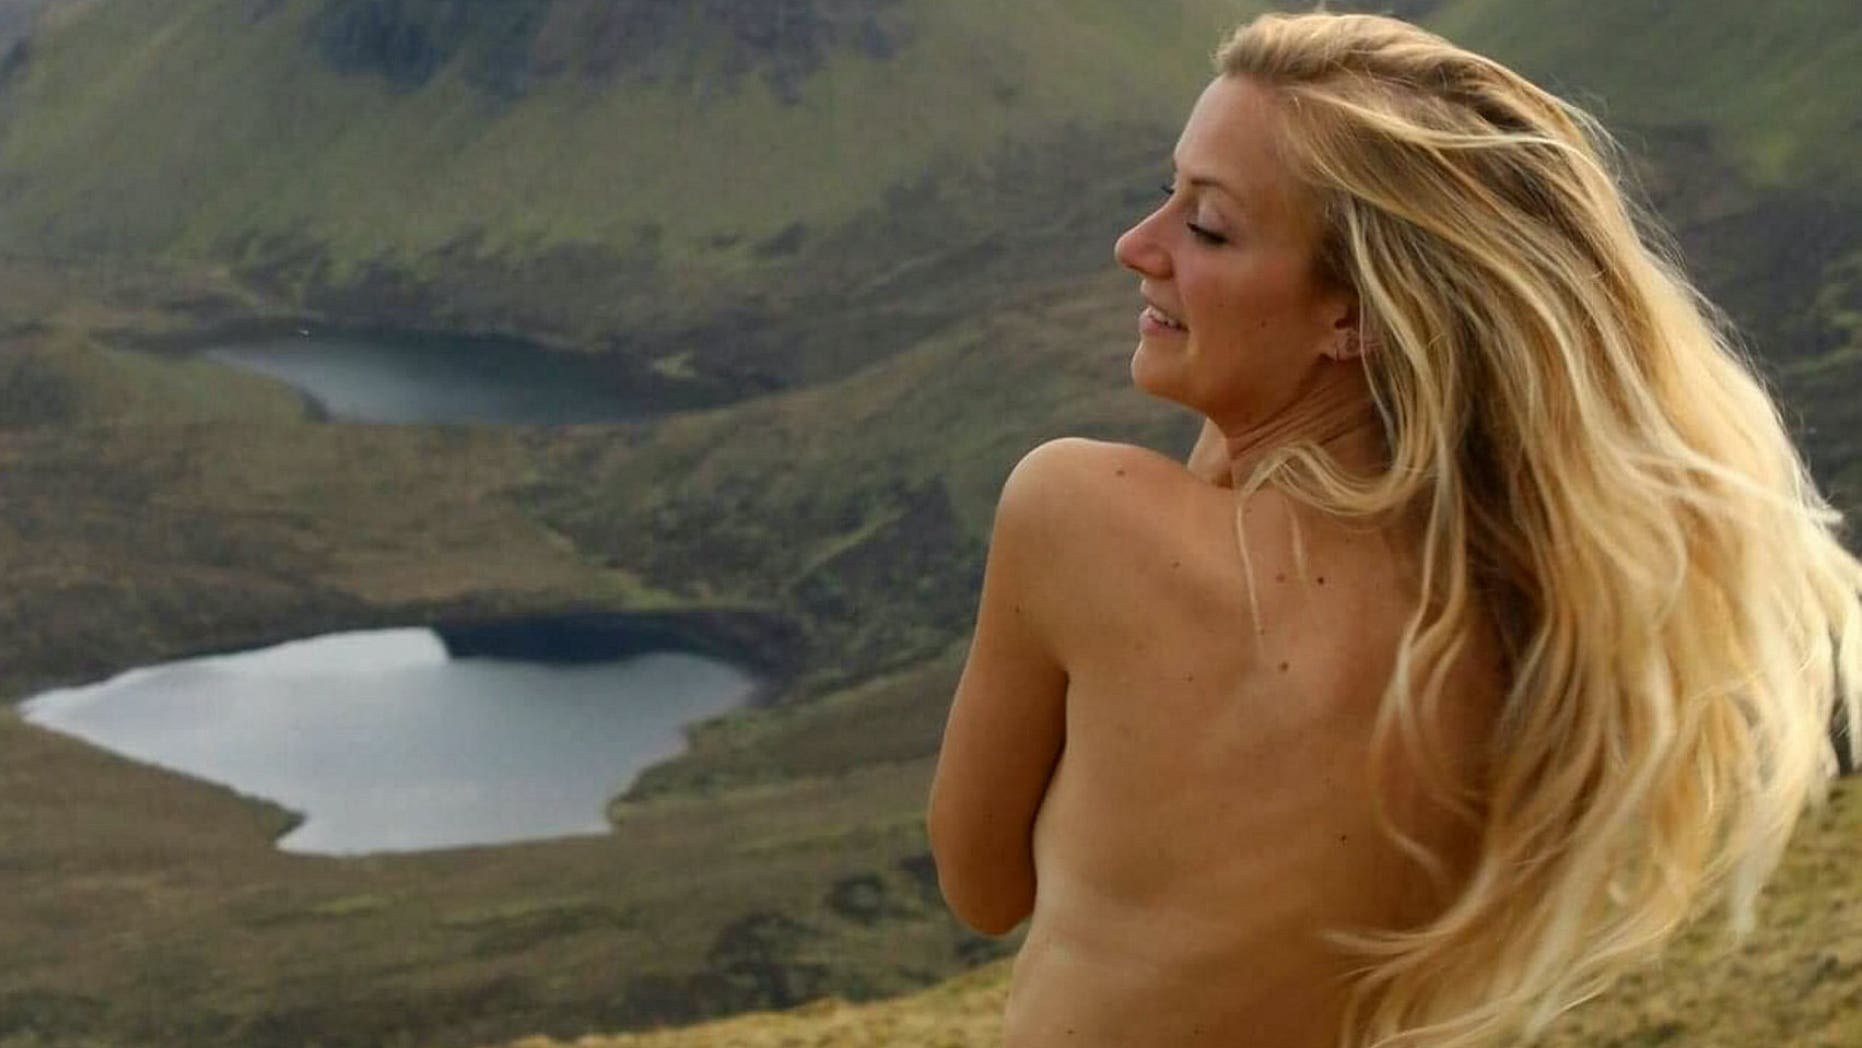 Lily Mika, 26, says she accidentally left theLumix camera at a rest stop in Skye, Scotland, during a three-day visit to the area about a week ago.